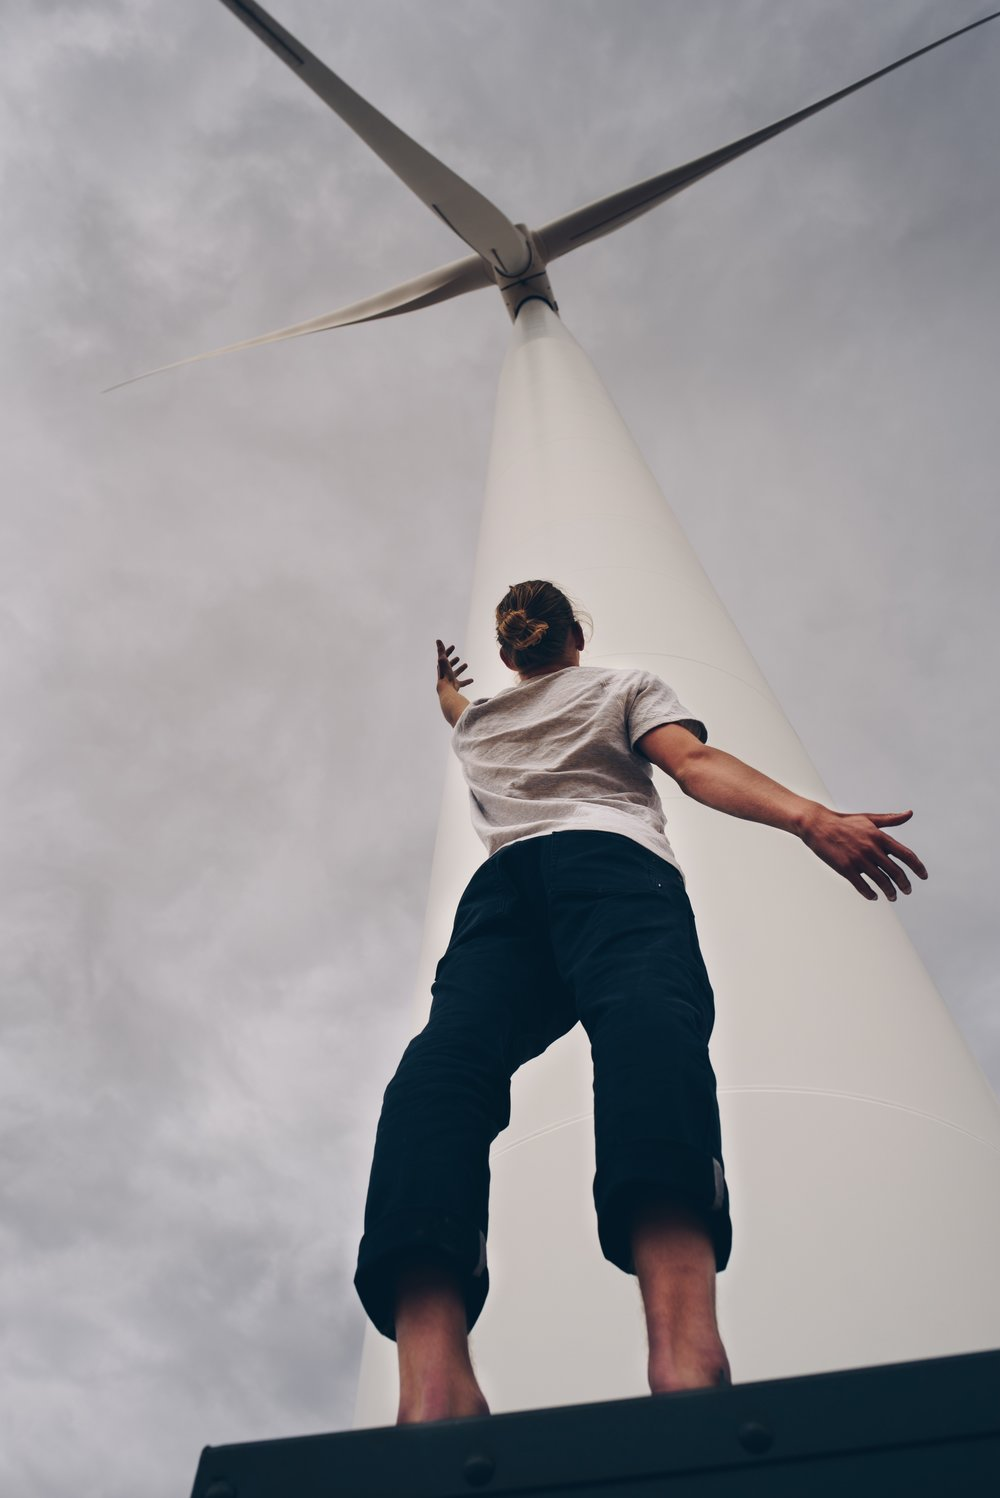 Small Wind is one of the many green energy solutions offered by Glas Éireann Solutions.